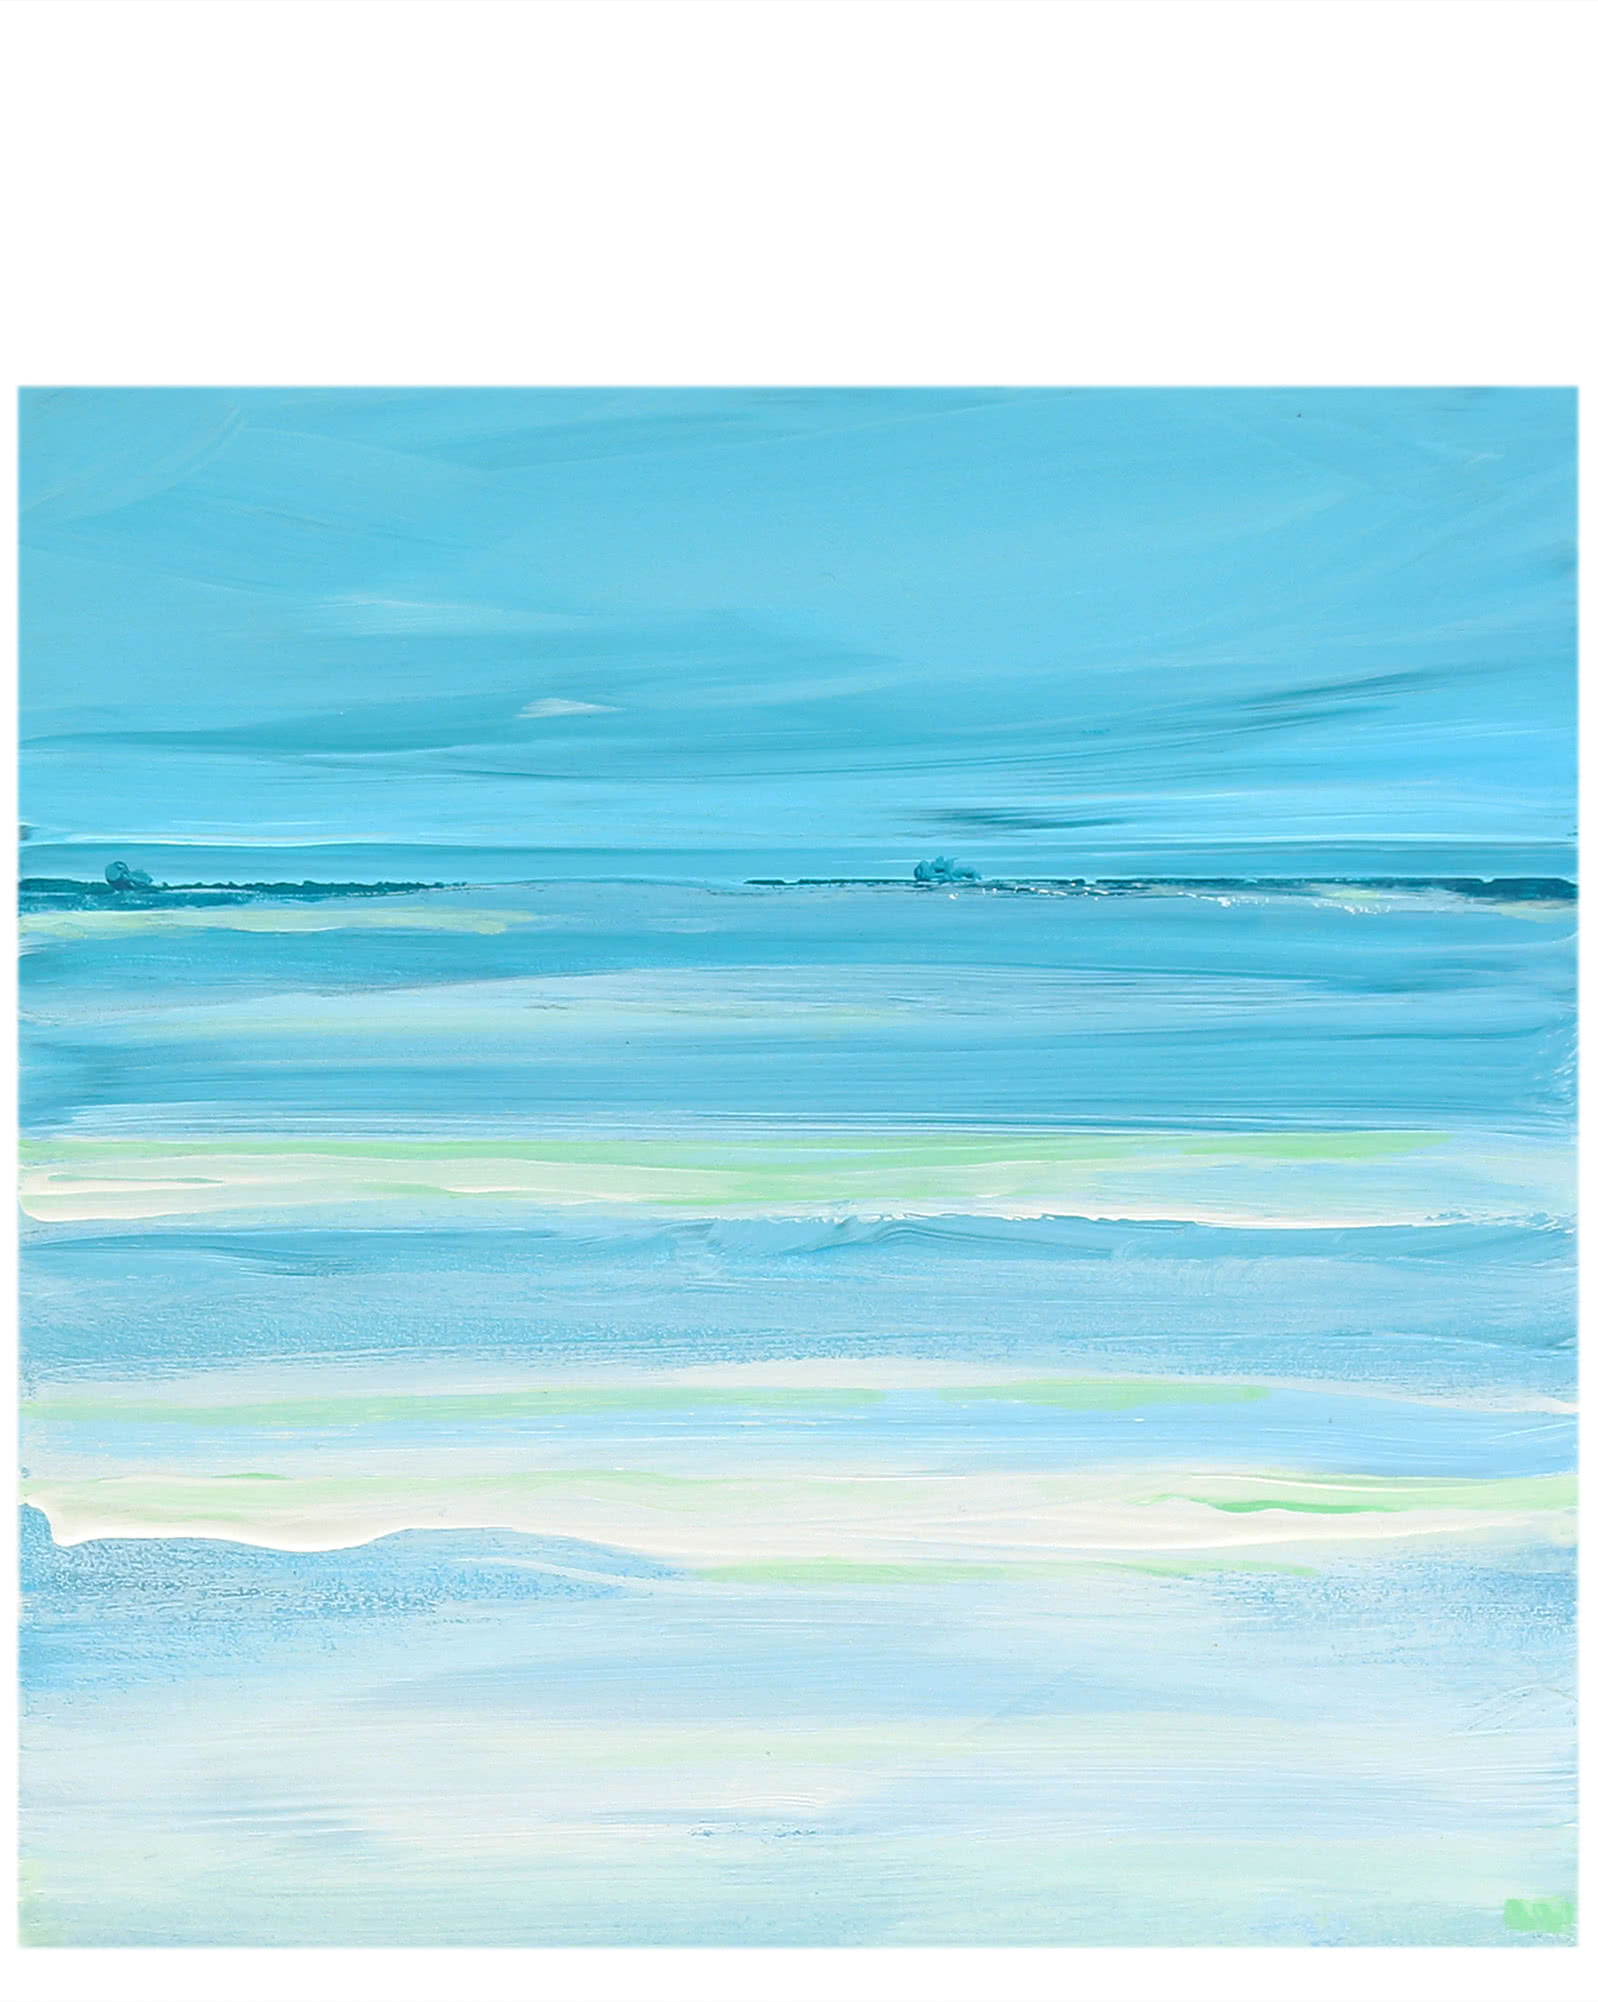 """Ocean Memories 126"" by Laurie Winthers,"